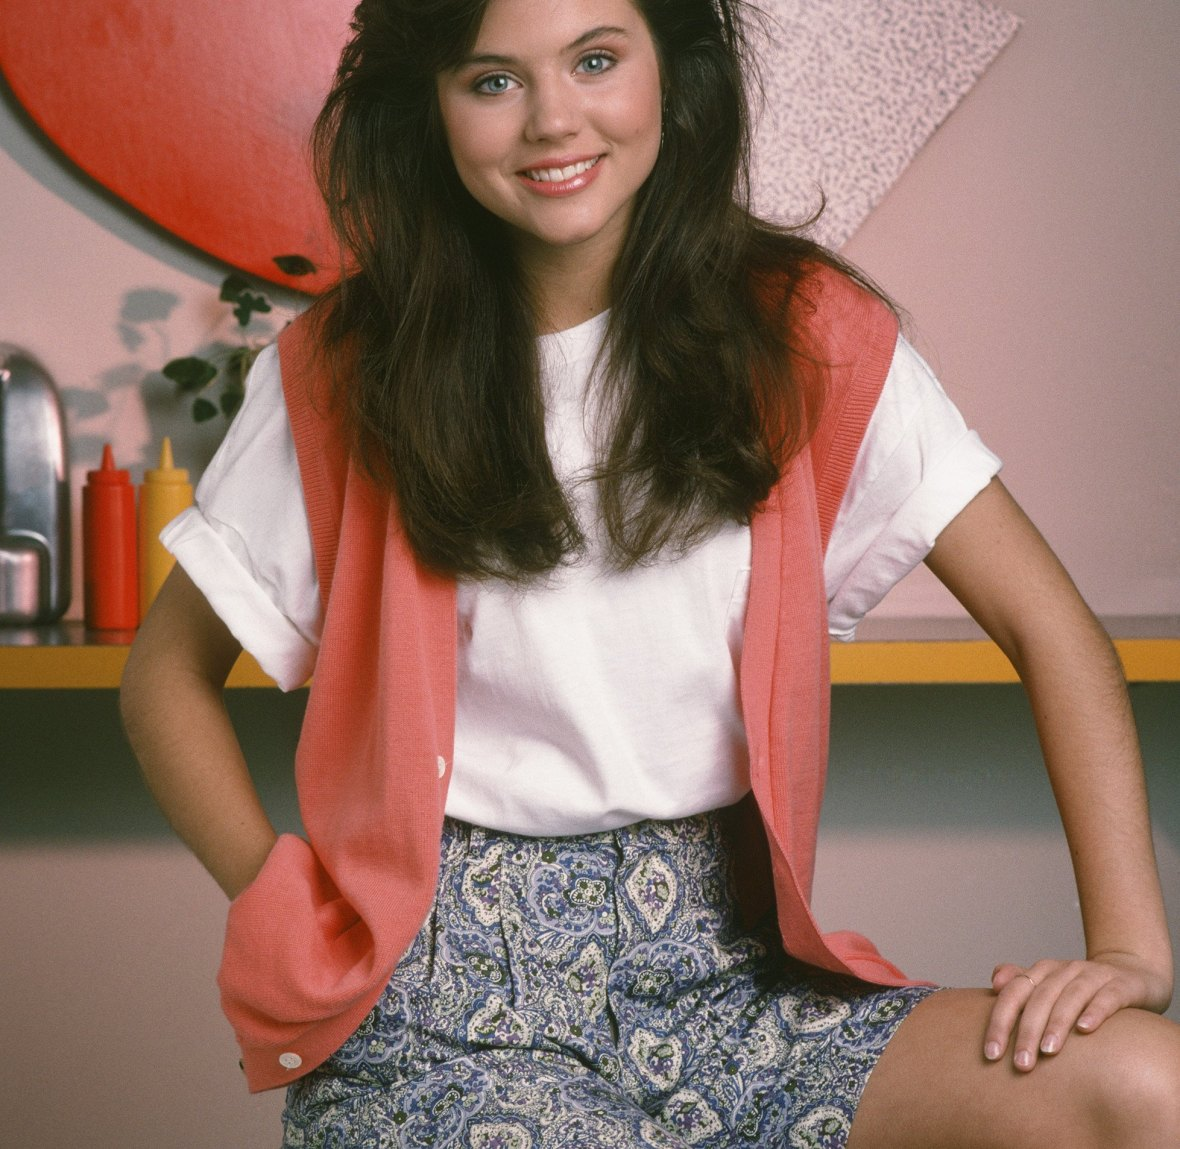 tiffani in 'saved by the bell.' (photo credit: getty images)